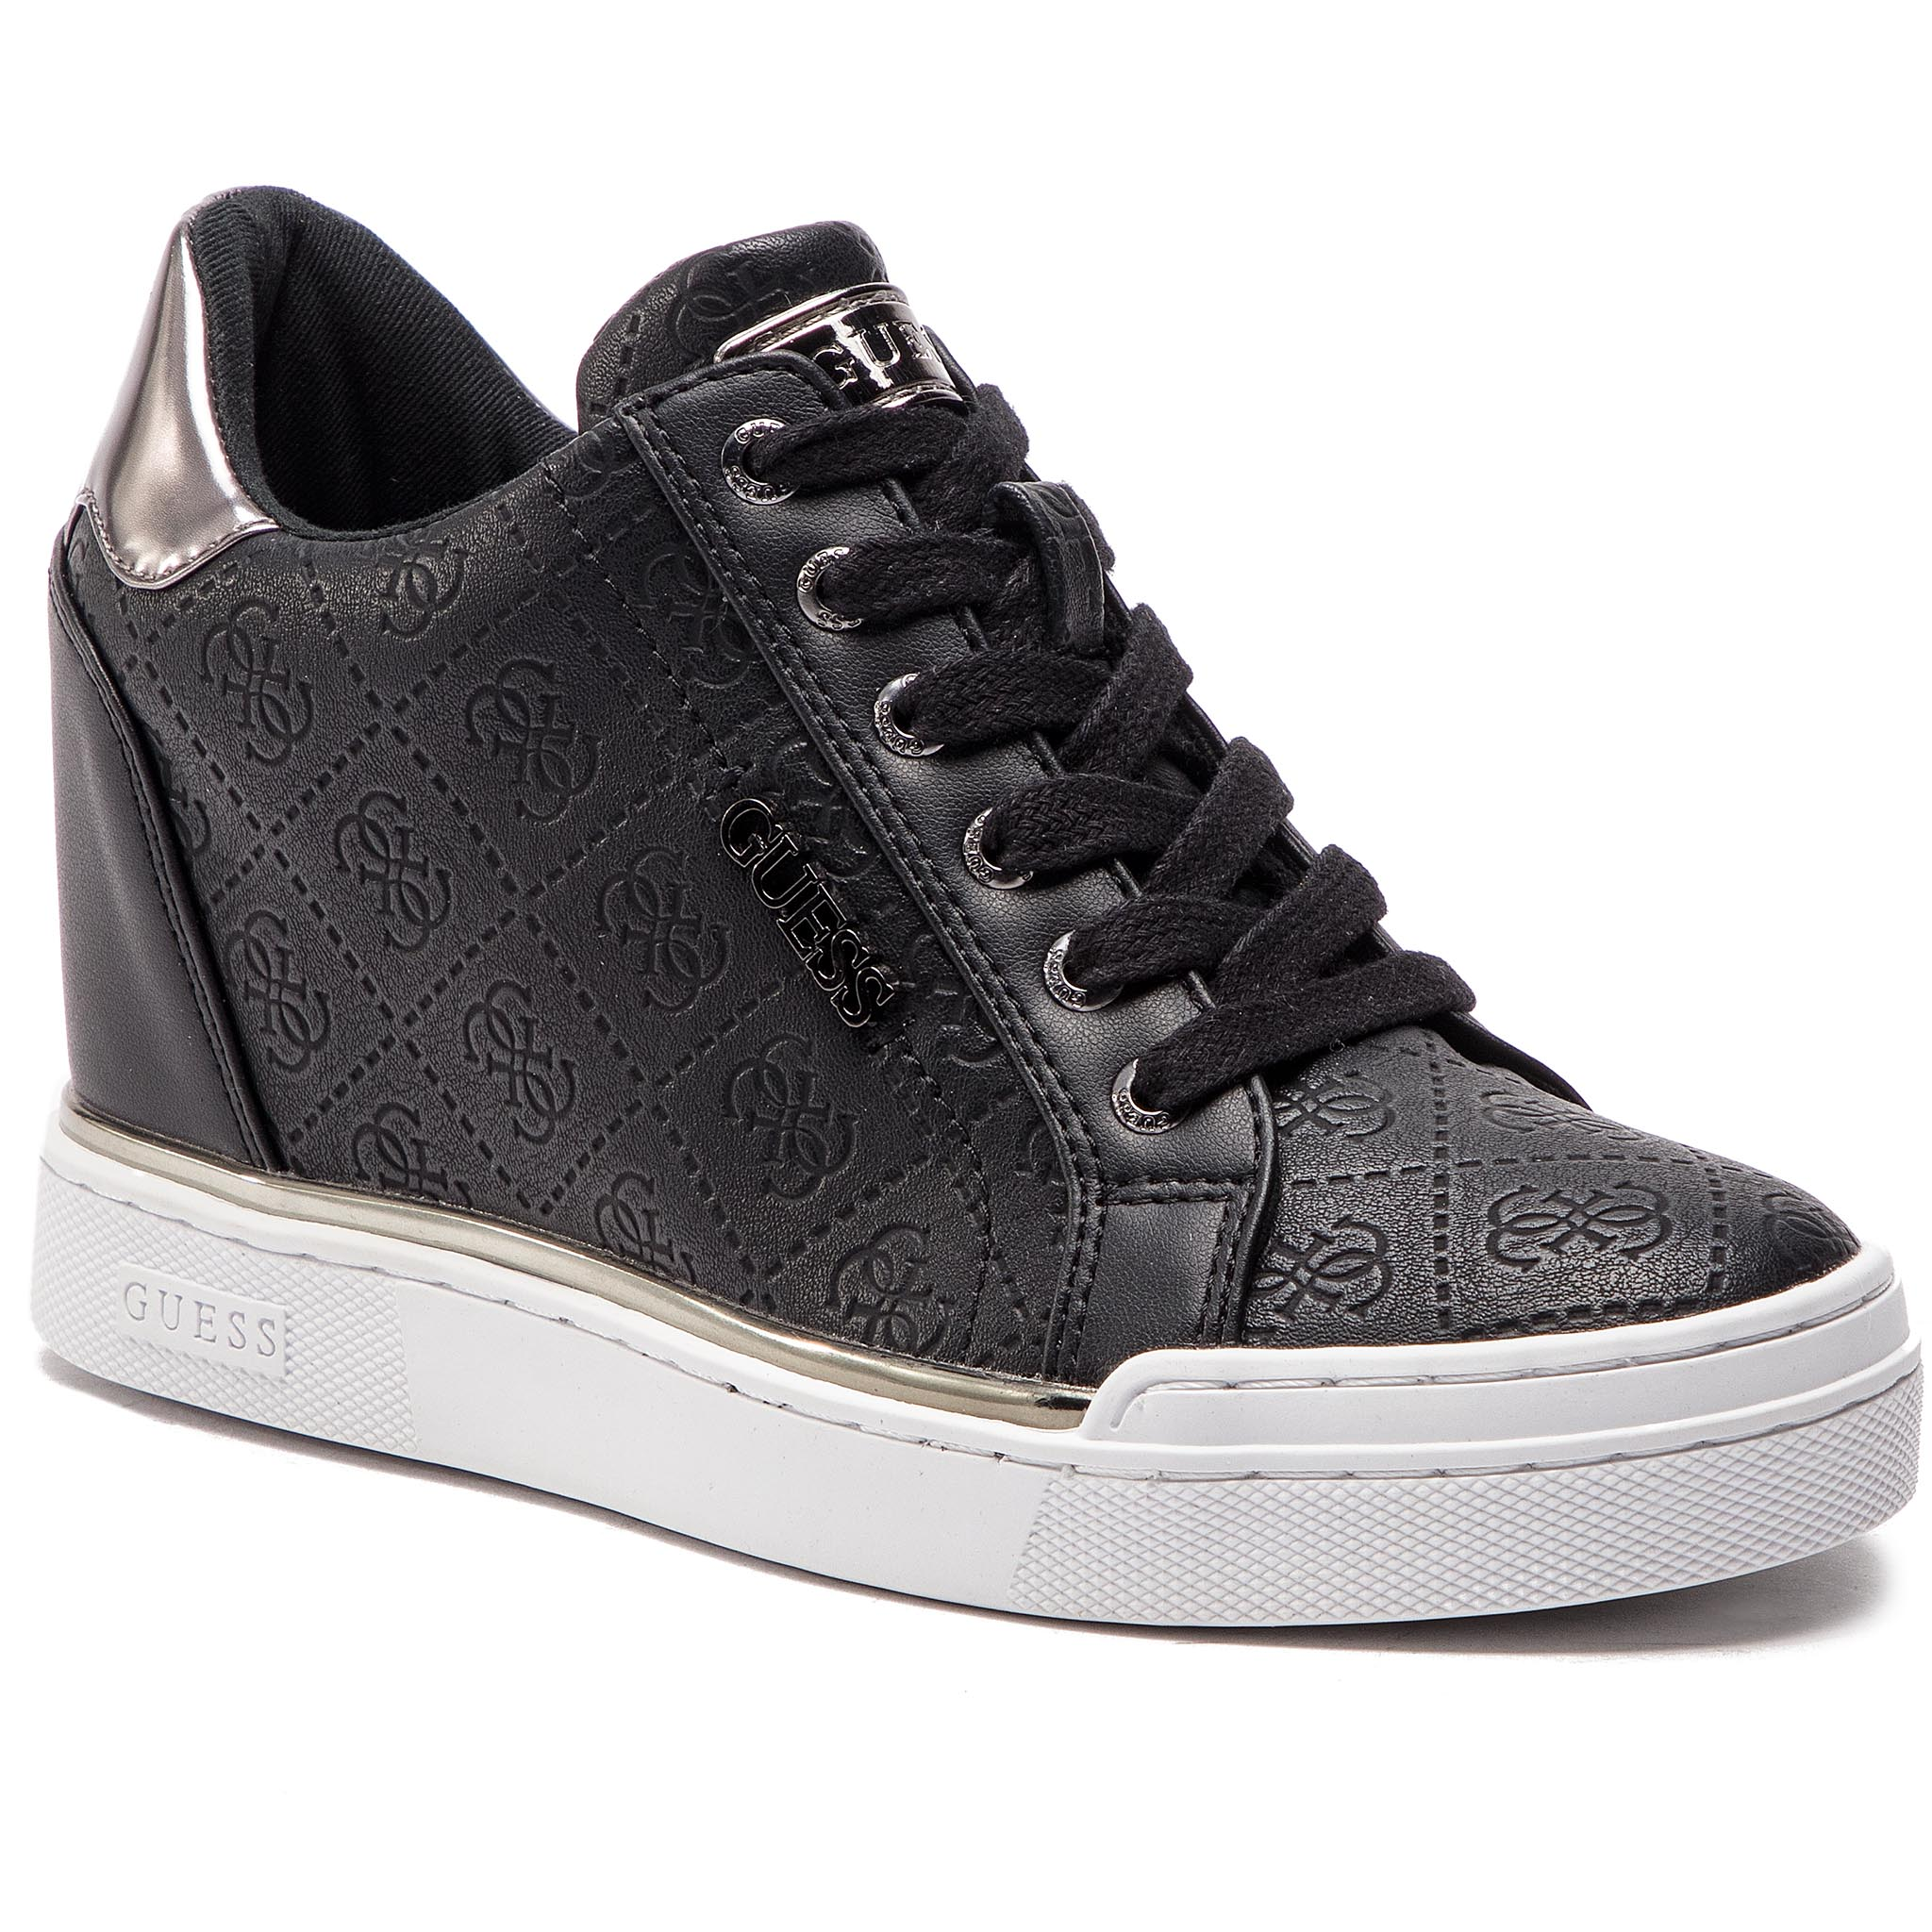 Sneakers GUESS - FL5FWU FAL12 BLACK